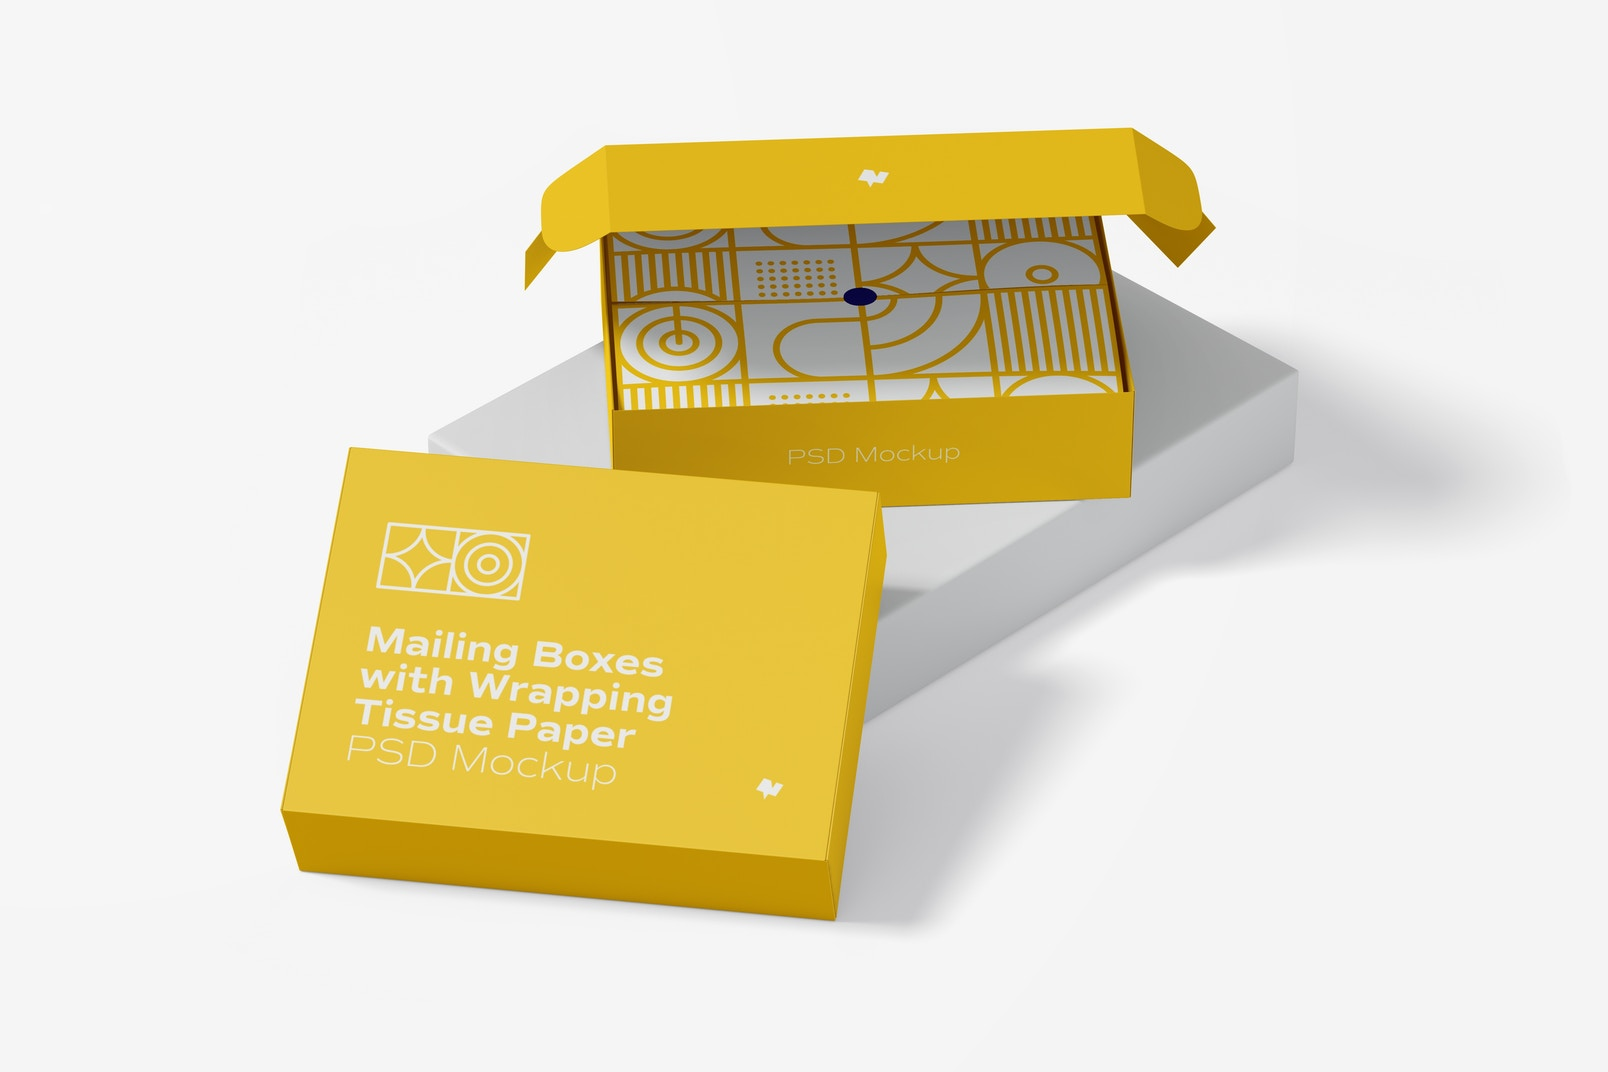 Mailing Boxes with Wrapping Tissue Paper Mockup